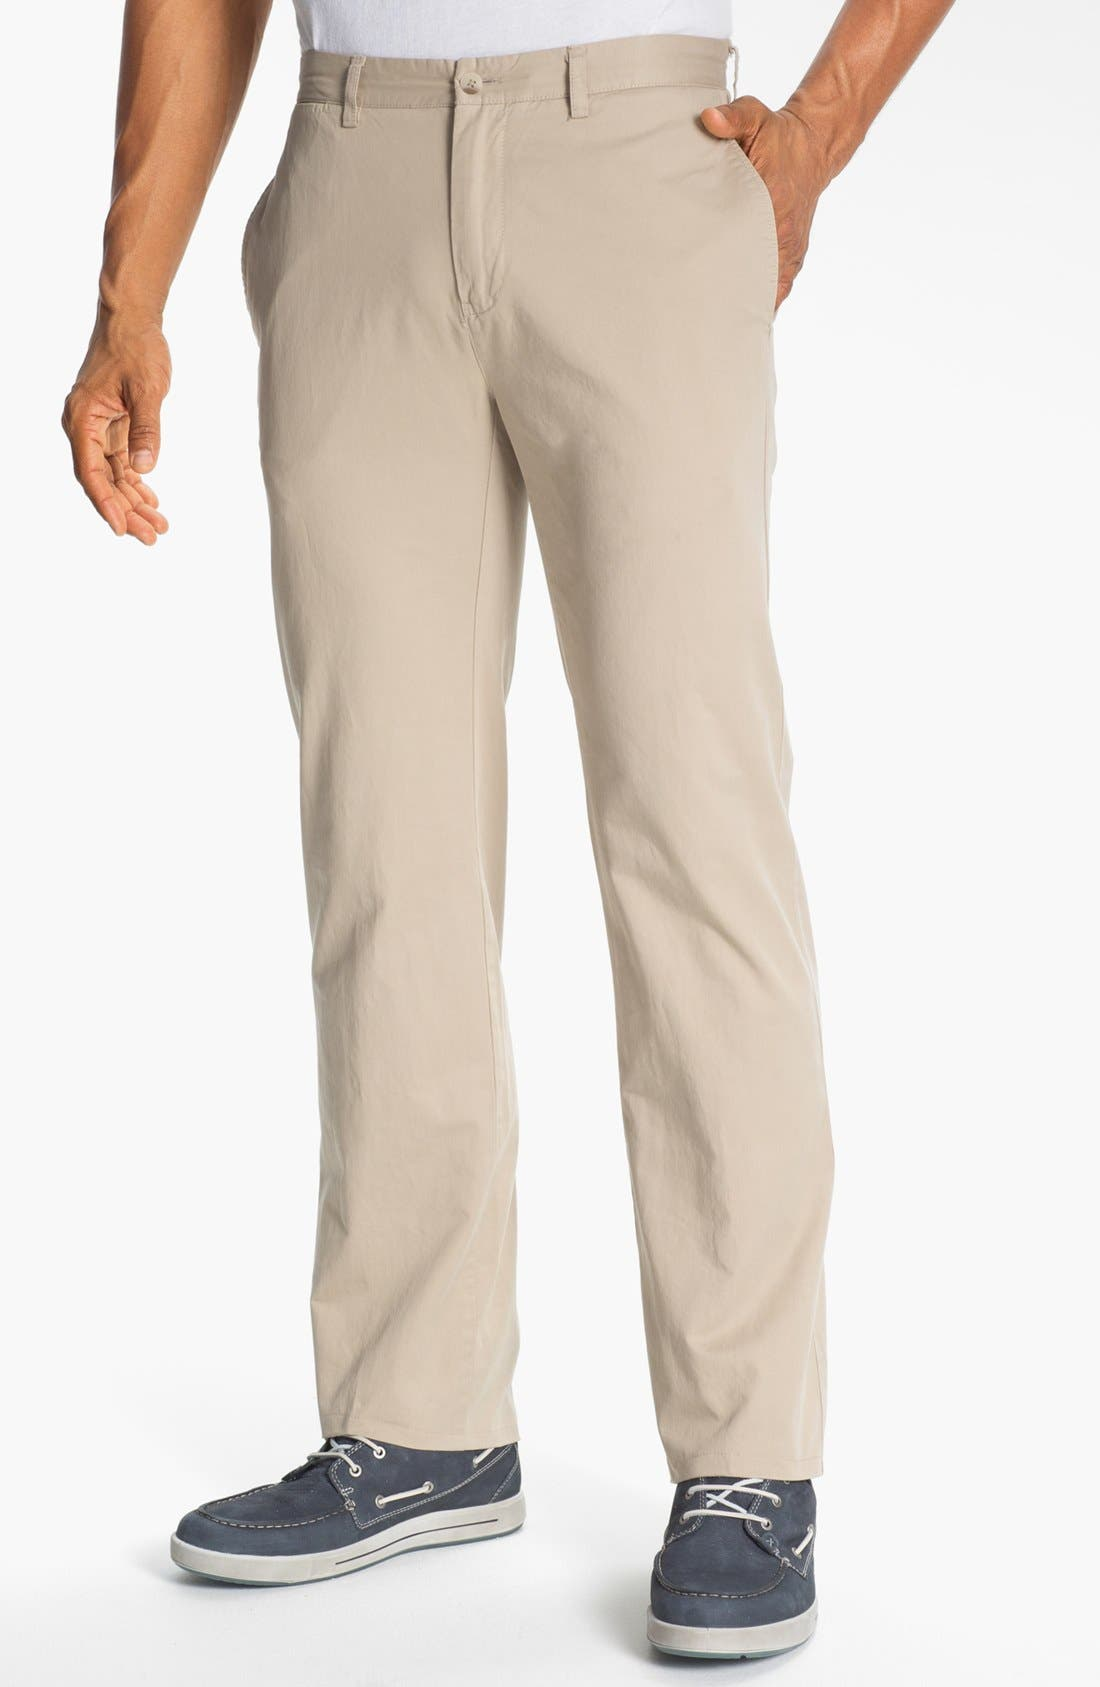 Alternate Image 1 Selected - Maker & Company 'The Keck' Chinos